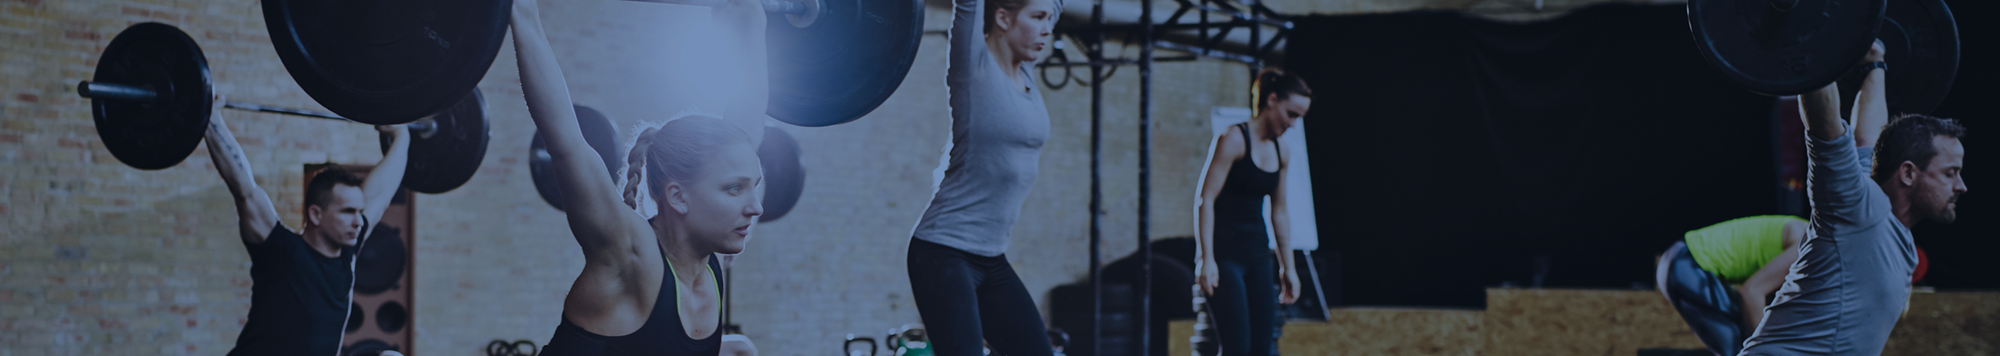 Gym class, woman lifting weights